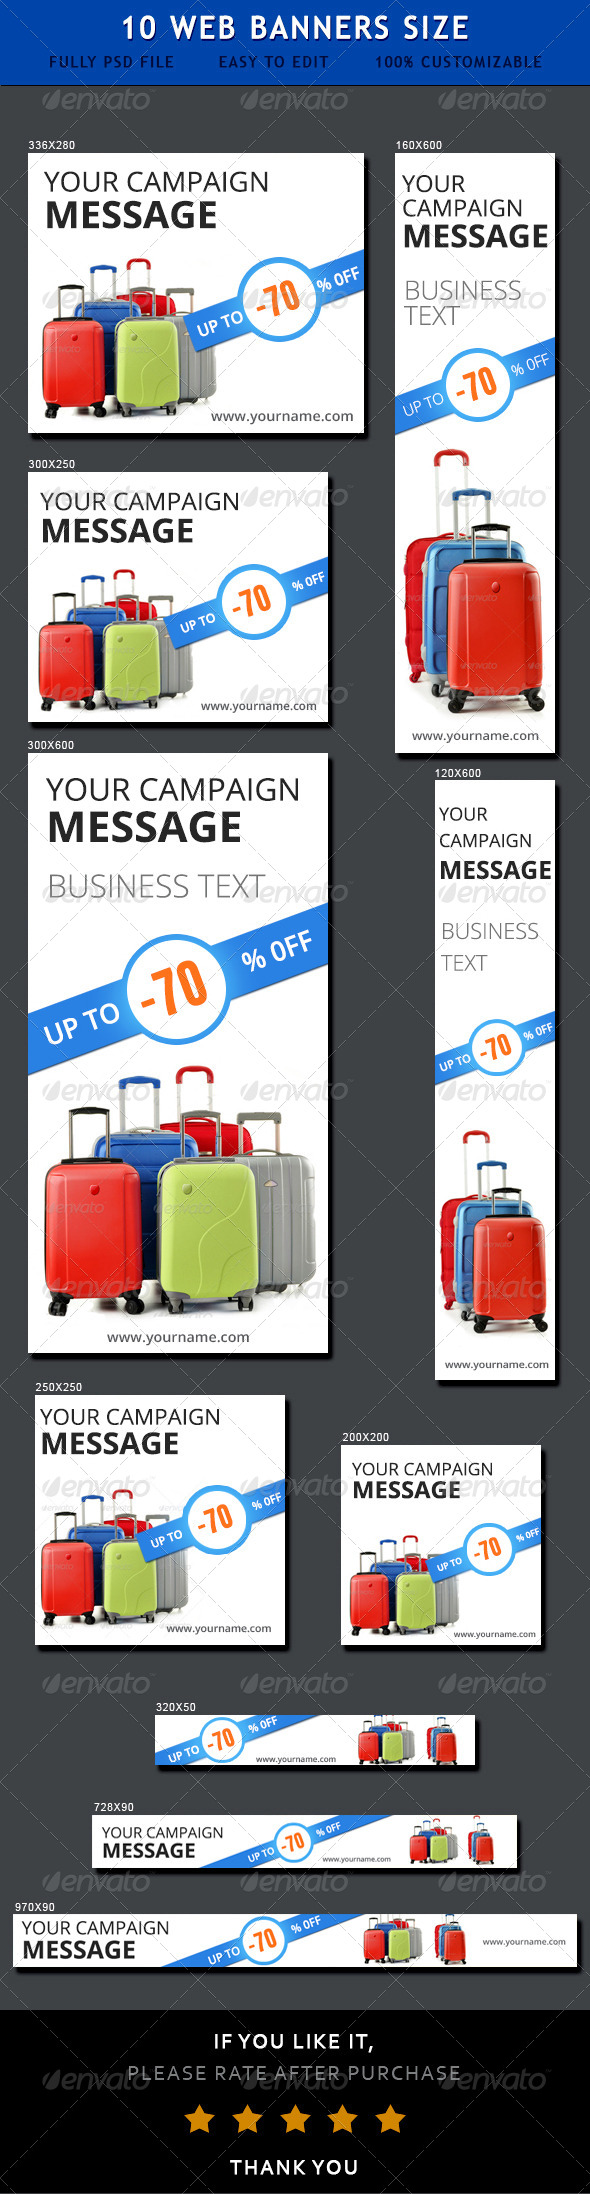 Sale Ad Banners  - Banners & Ads Web Elements